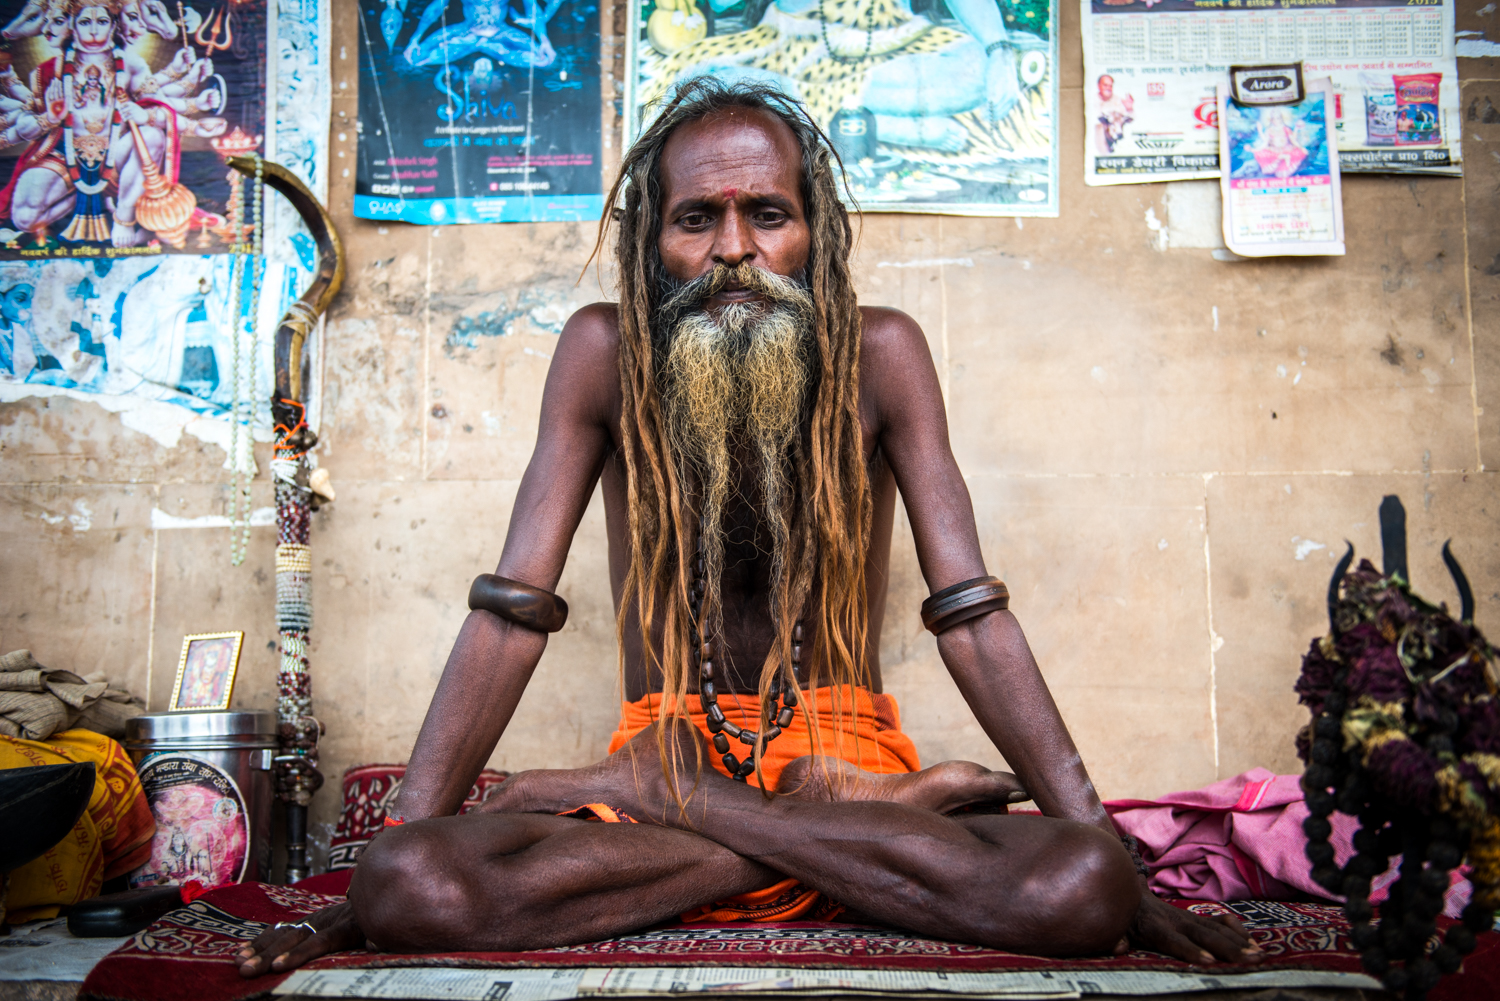 At times it is hard to distinguish between Gurus who are actually practicing, and Gurus who play the part for tourist attention - Varanansi, India.